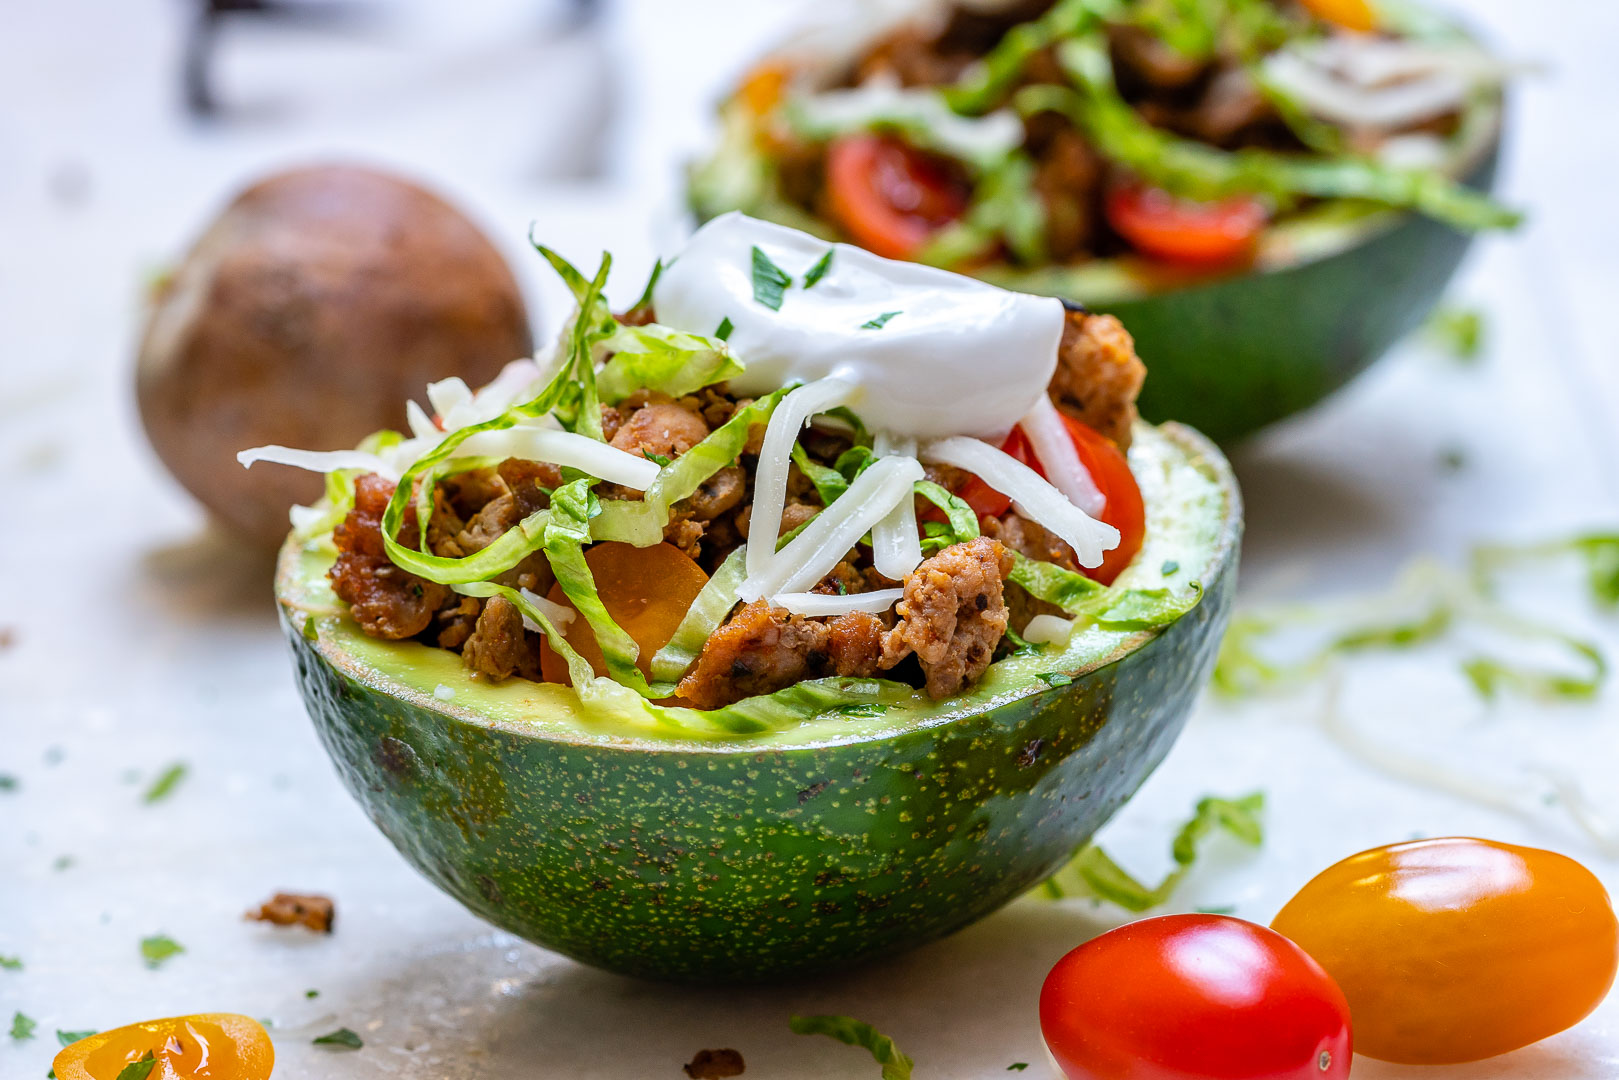 Eat Clean Turkey Taco Stuffed Avocados with all the Goodies